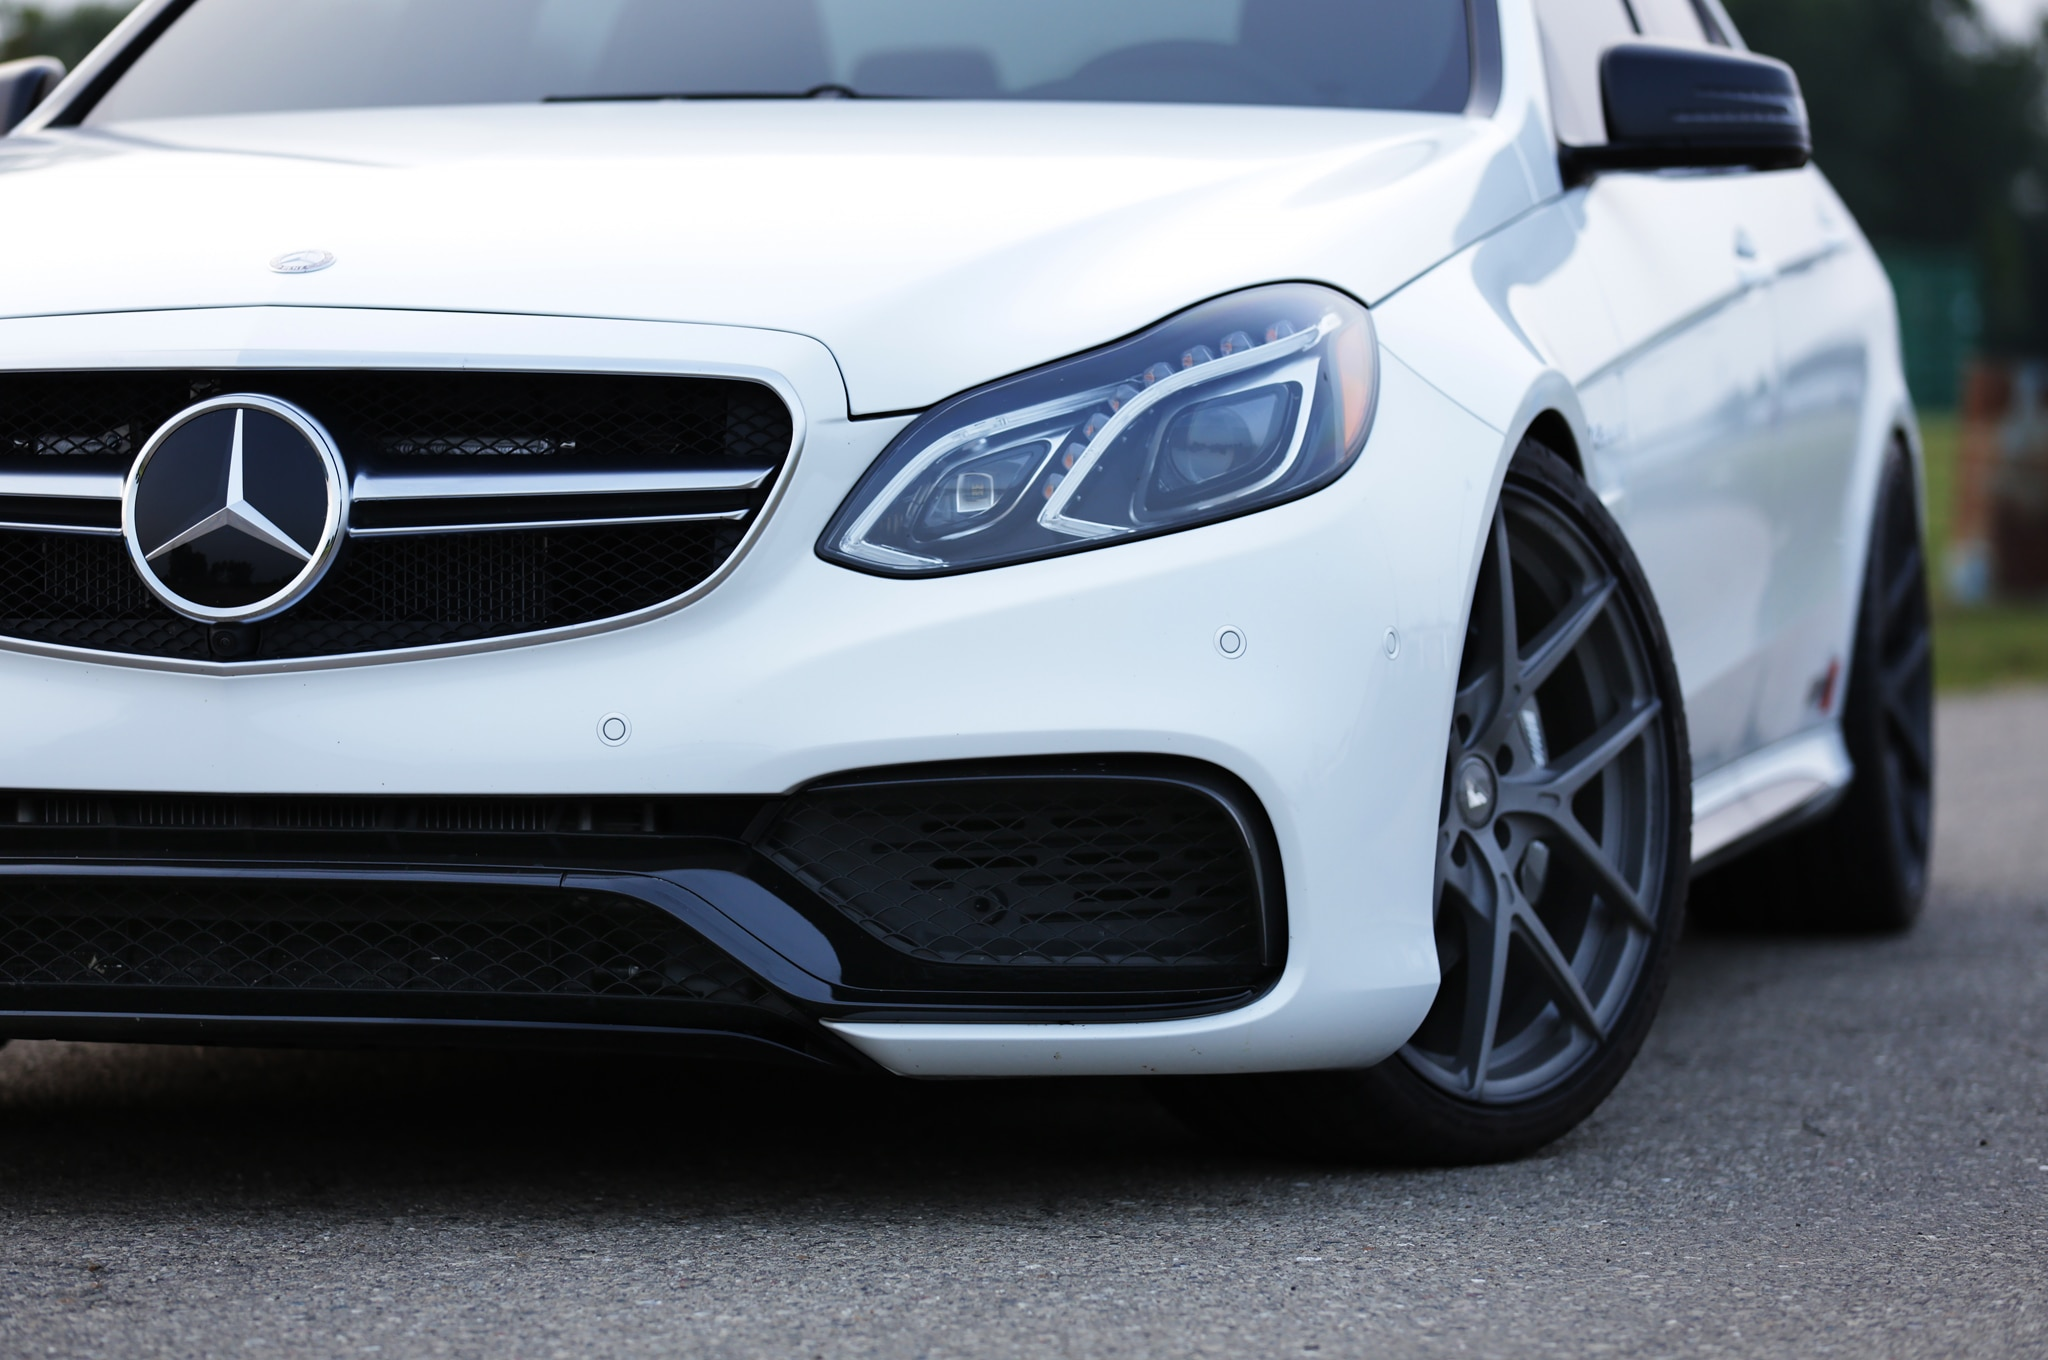 2014 Mercedes Benz E63 Amg Alpha 7 By Ams Performance Review